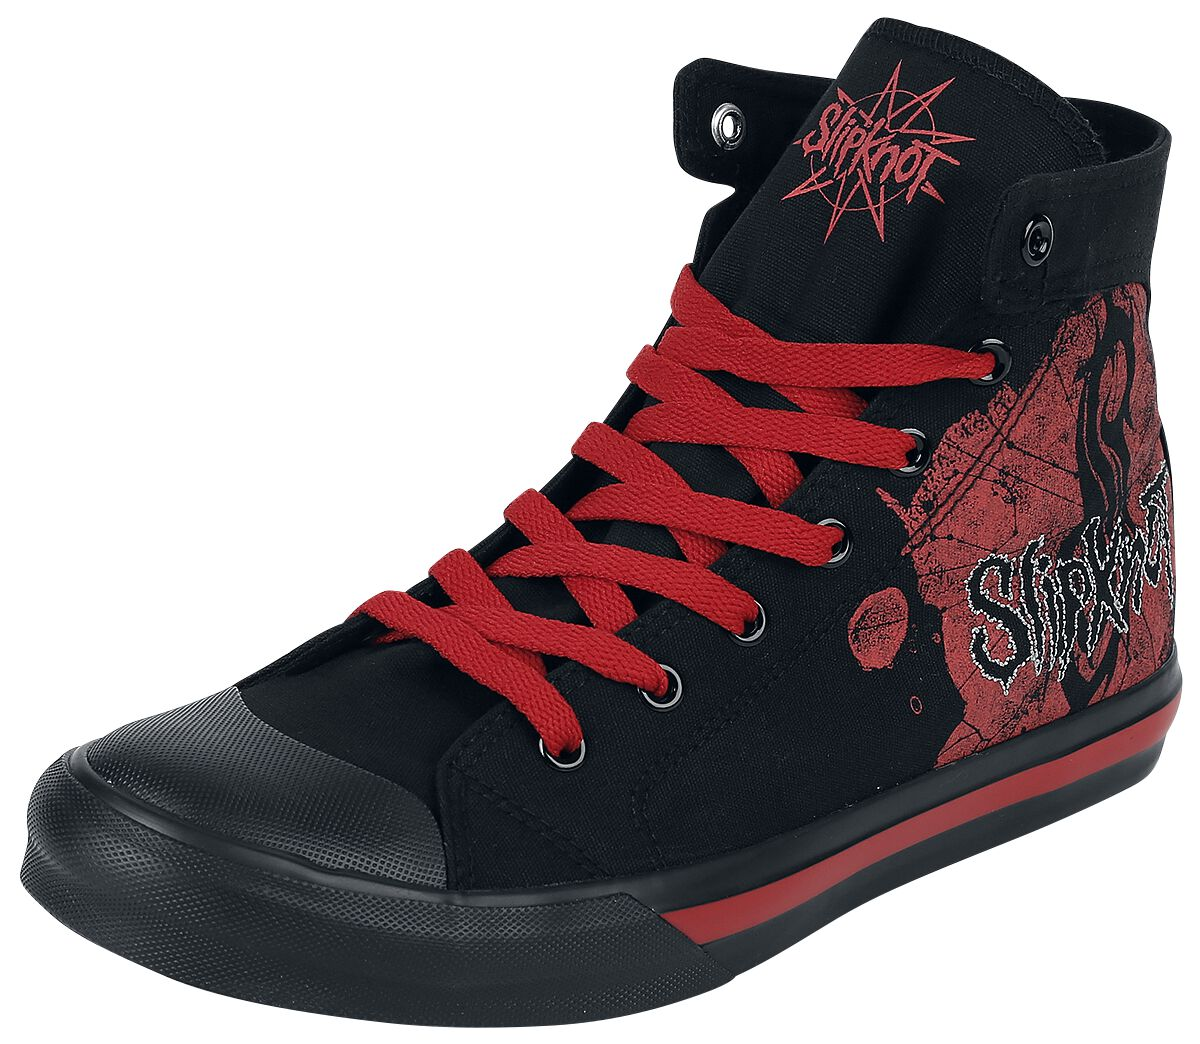 Image of   Slipknot Logo Sneakers sort